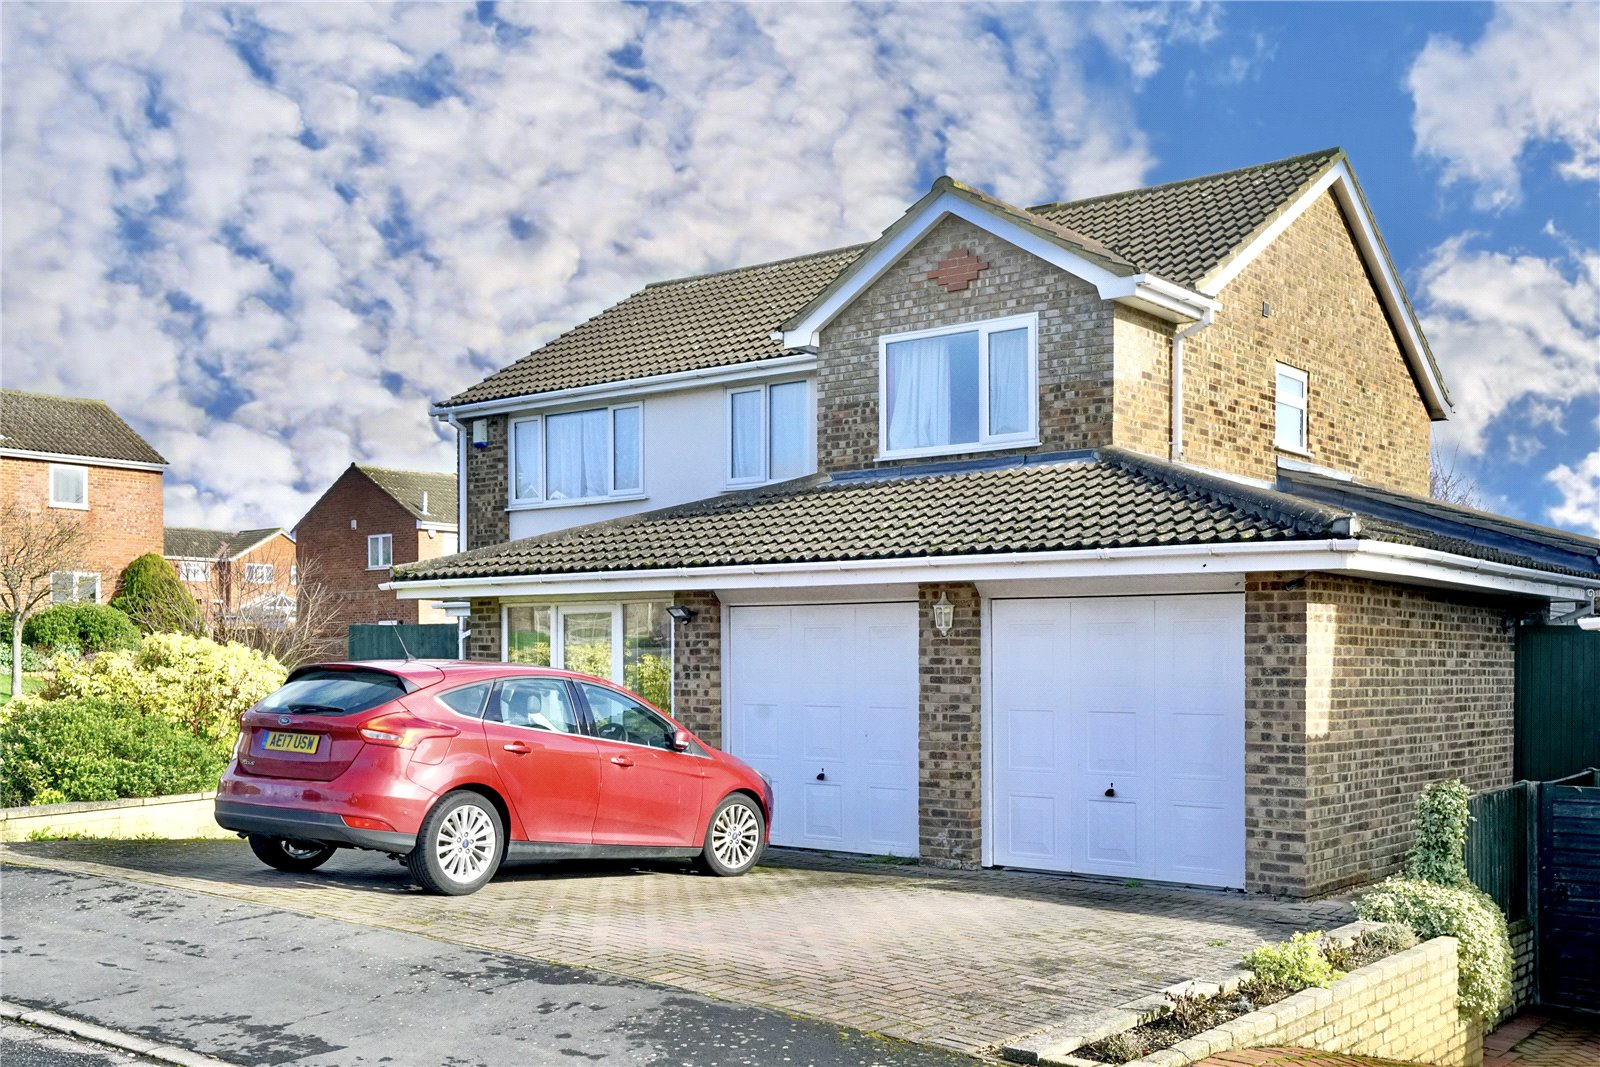 4 bed house for sale in Eaton Ford, PE19